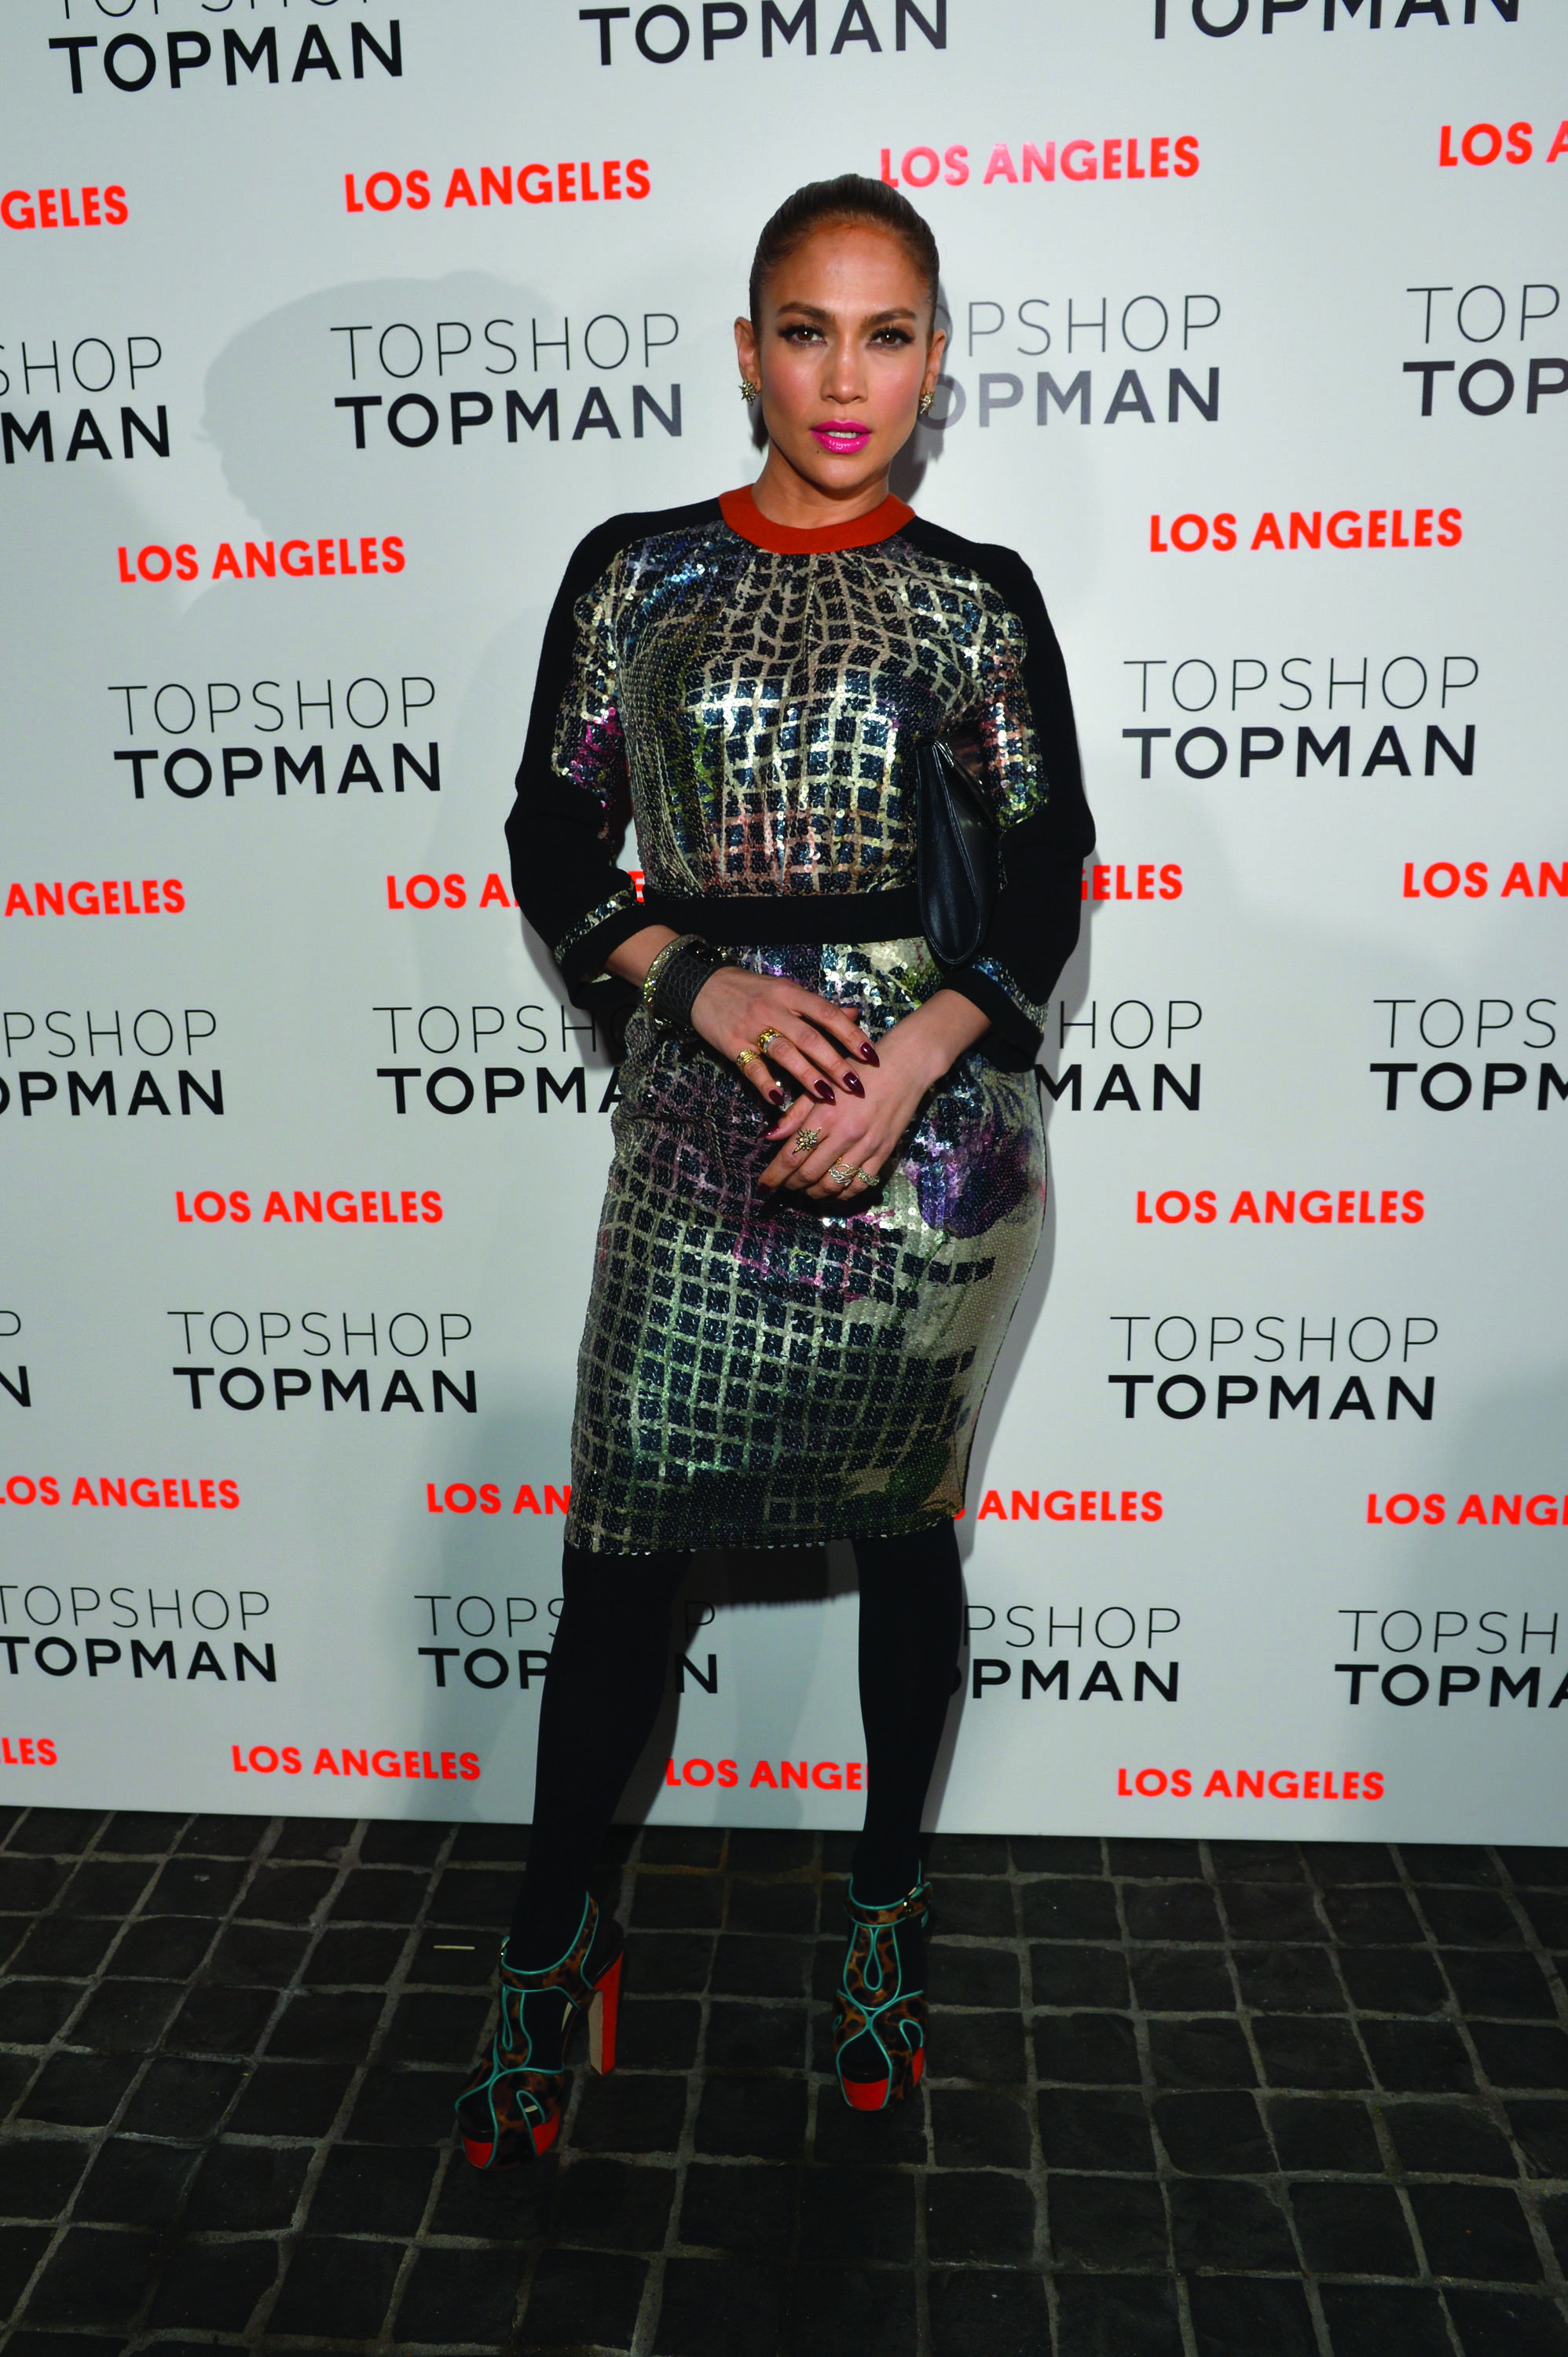 Topshop Topman LA Opening Party – Red Carpet